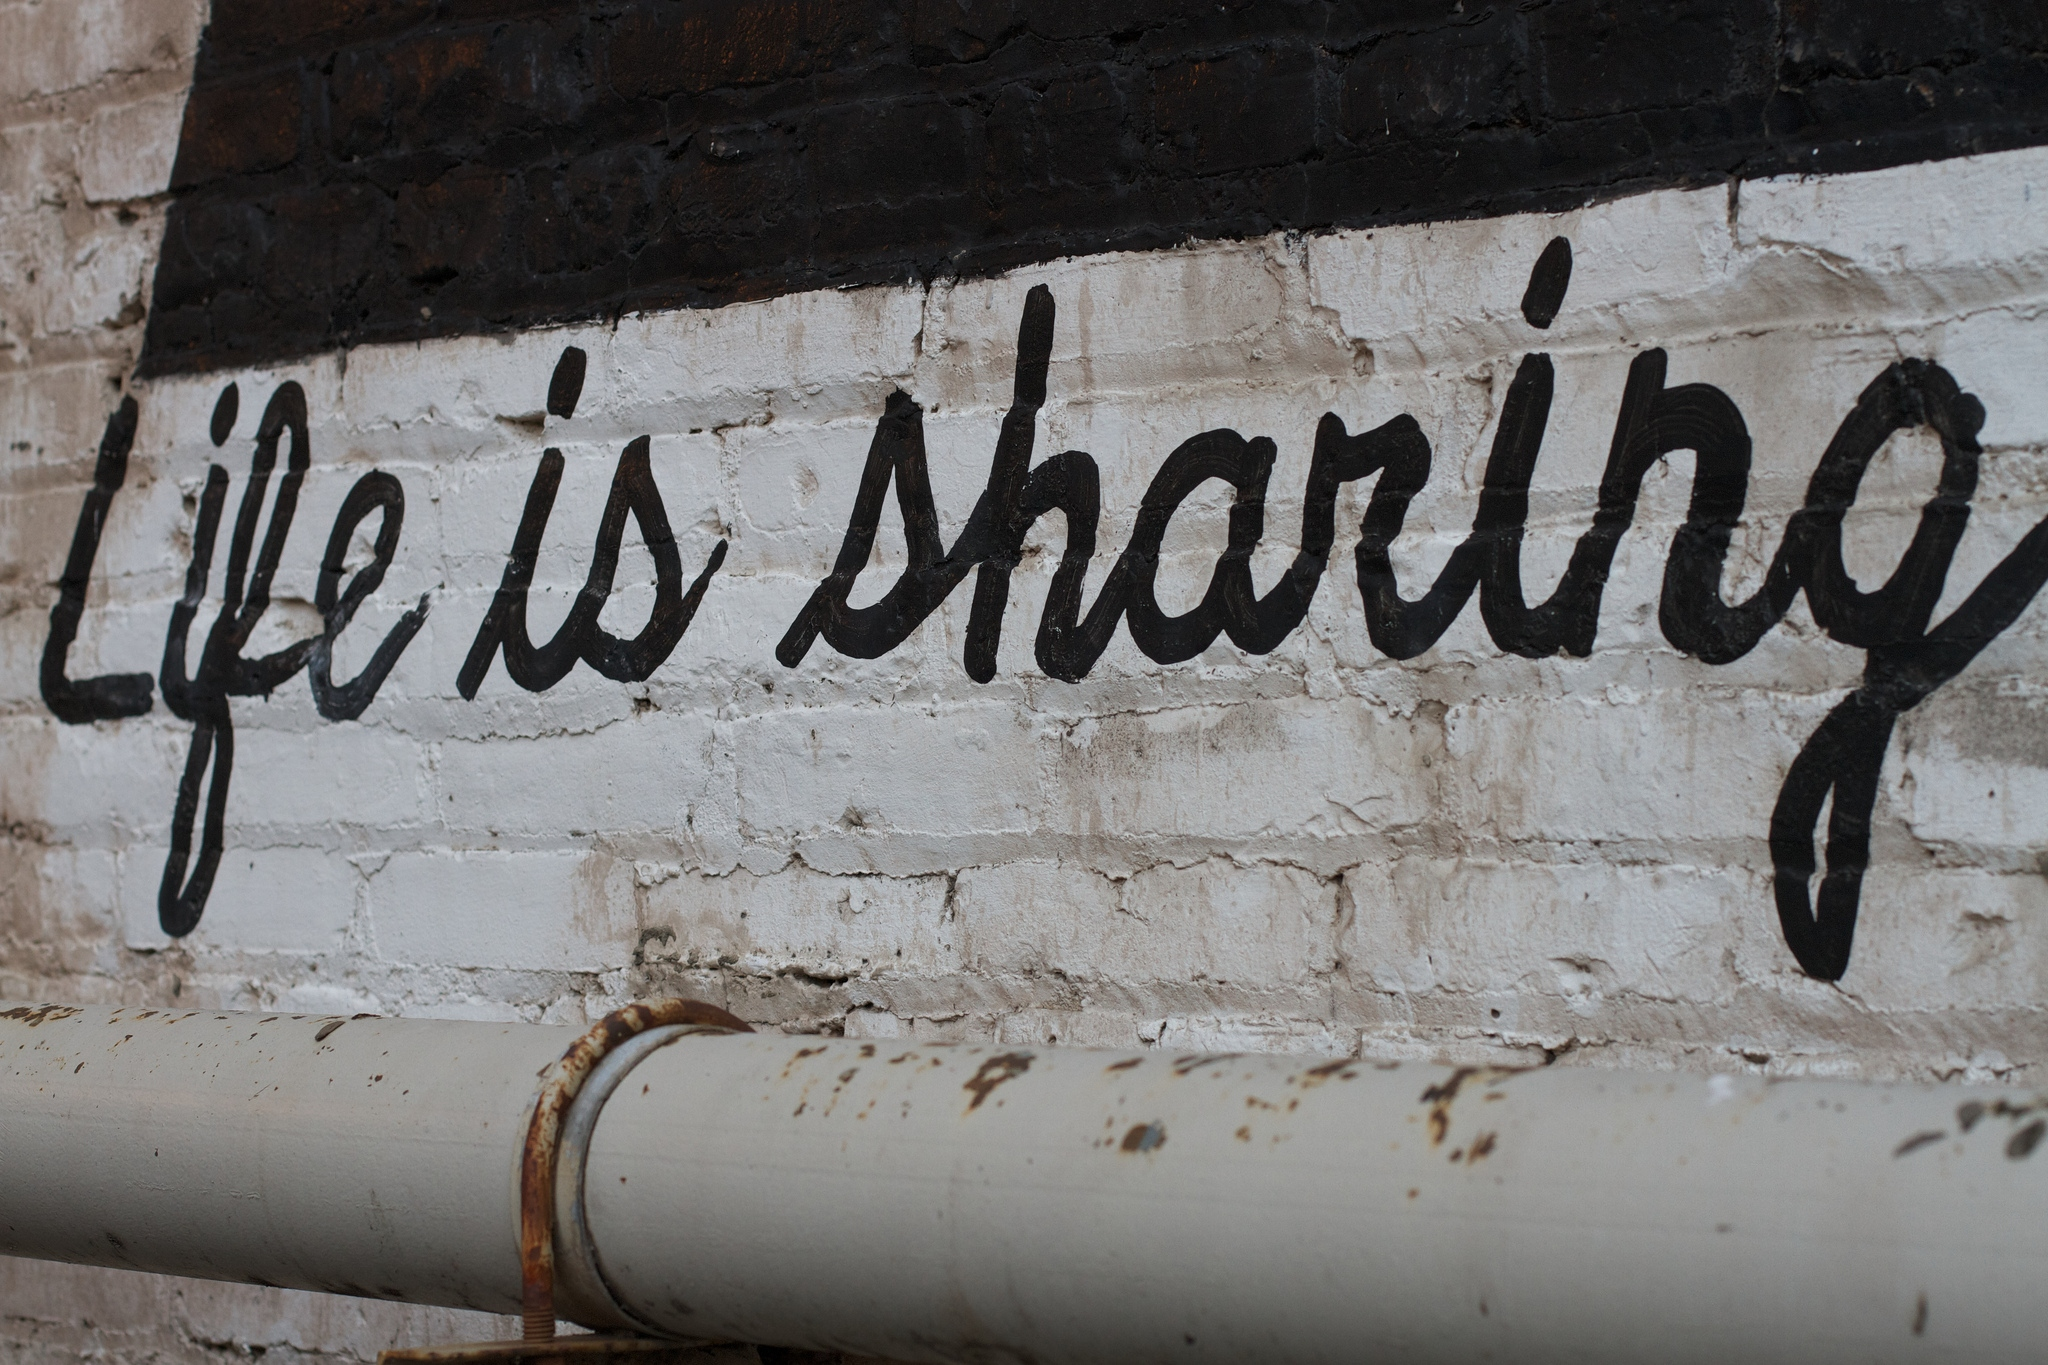 Life is sharing - condiciones laborales